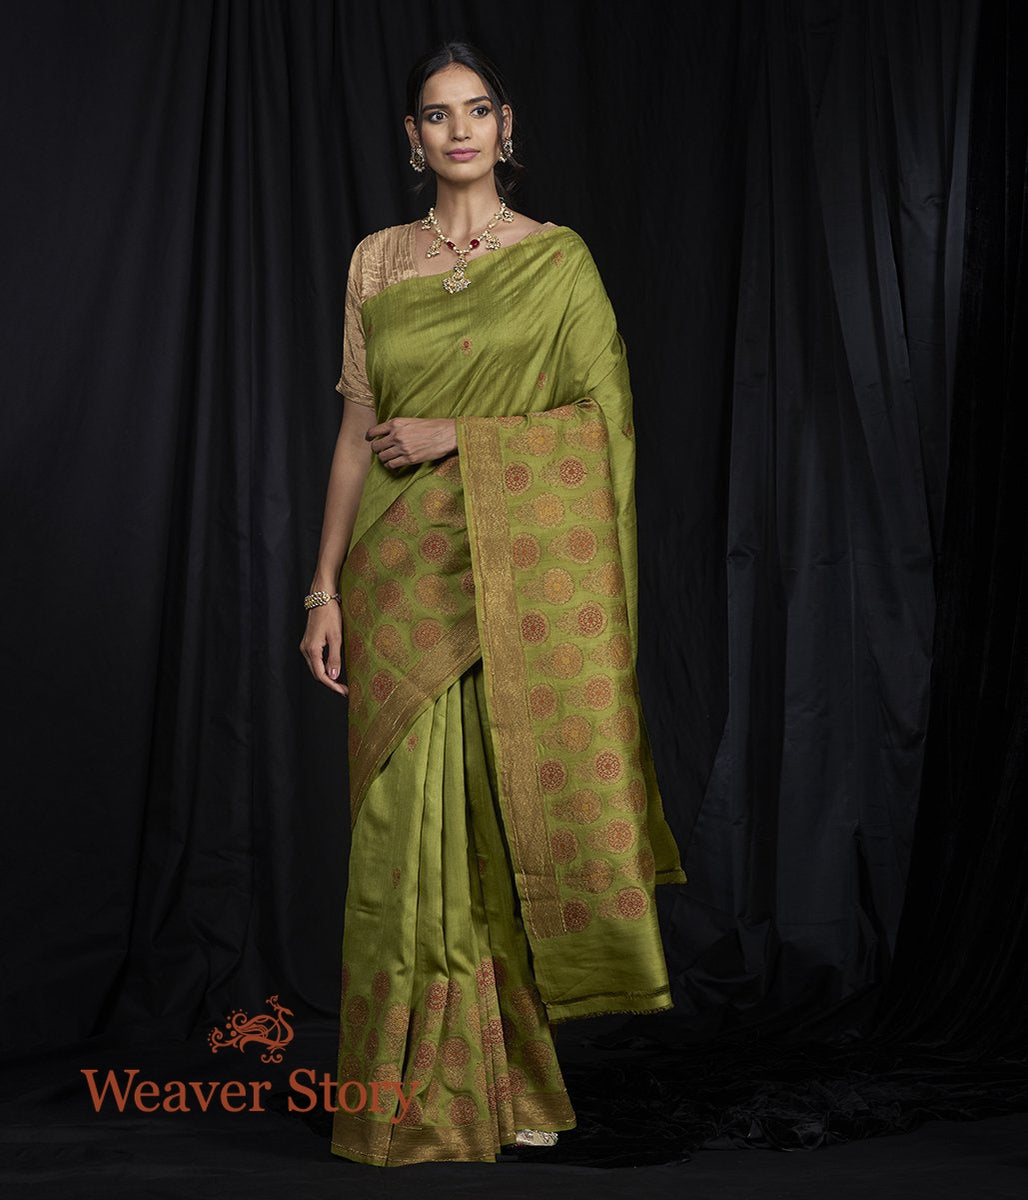 Handwoven Munga Saree with Big Floral Border